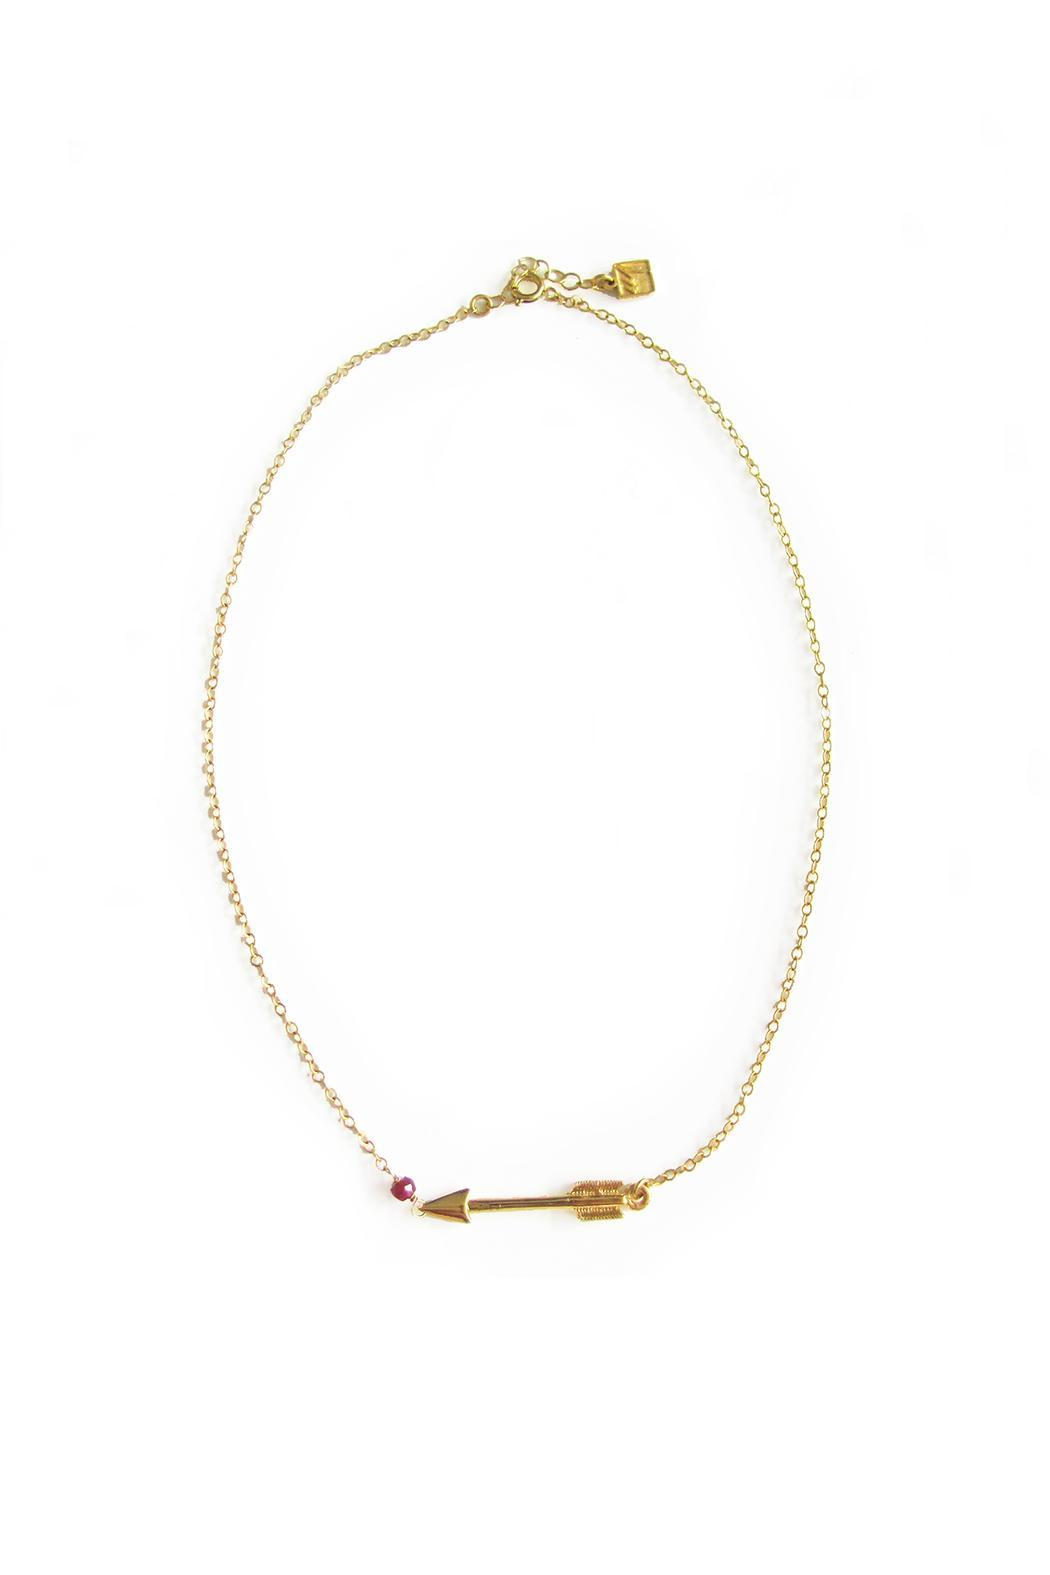 Malia Jewelry Ruby Arrow Necklace - Main Image